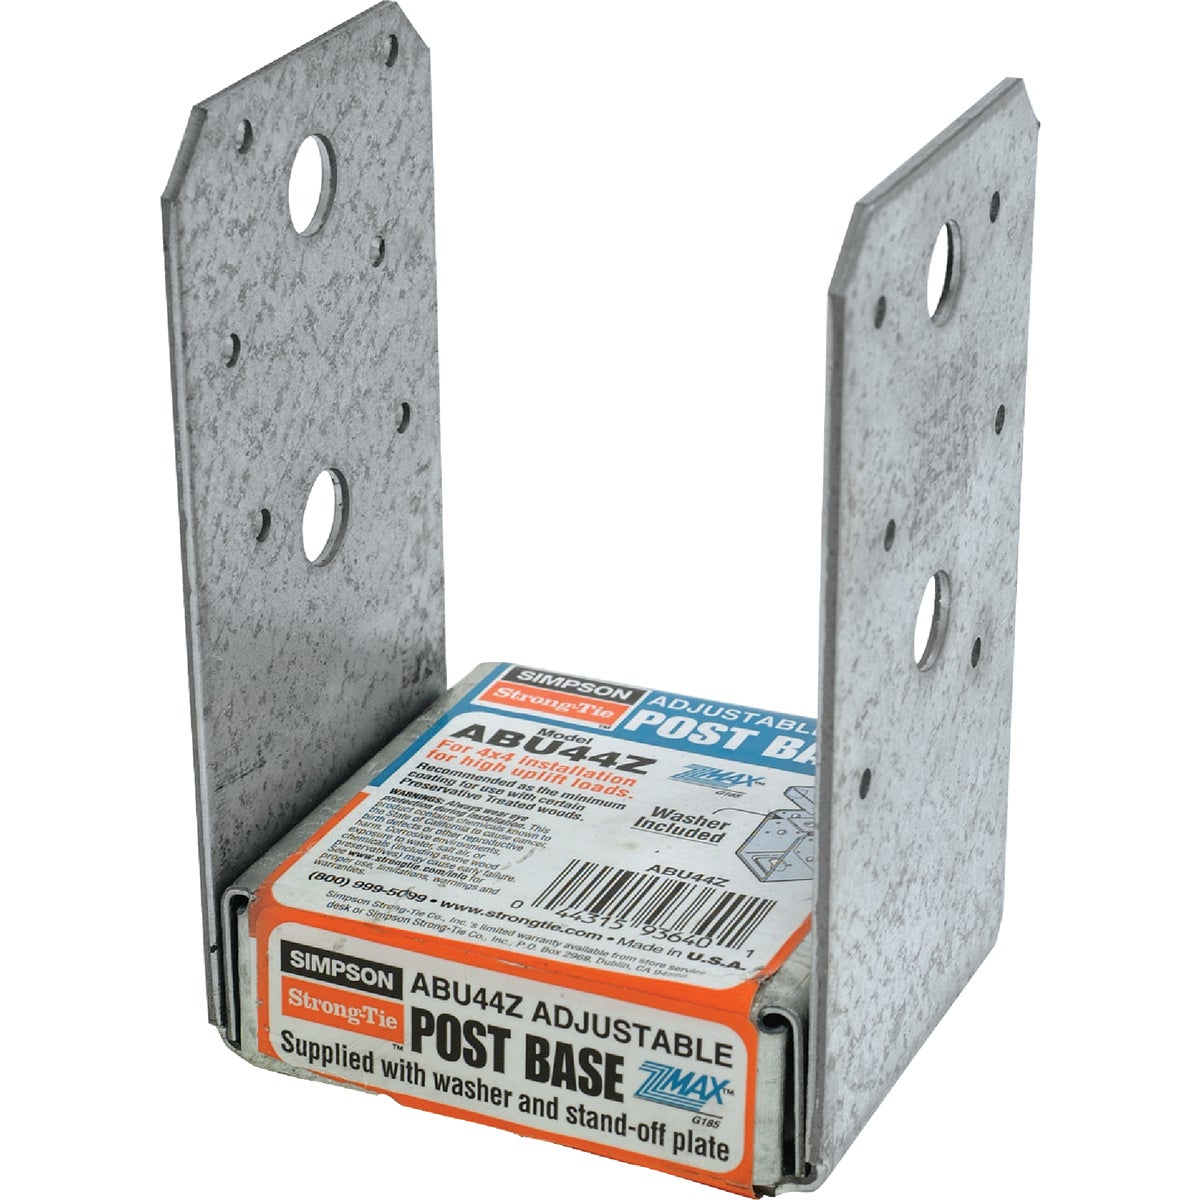 4X4 ADJ POST BASE Z-MAX - ABU44Z by Simpson Strong Tie